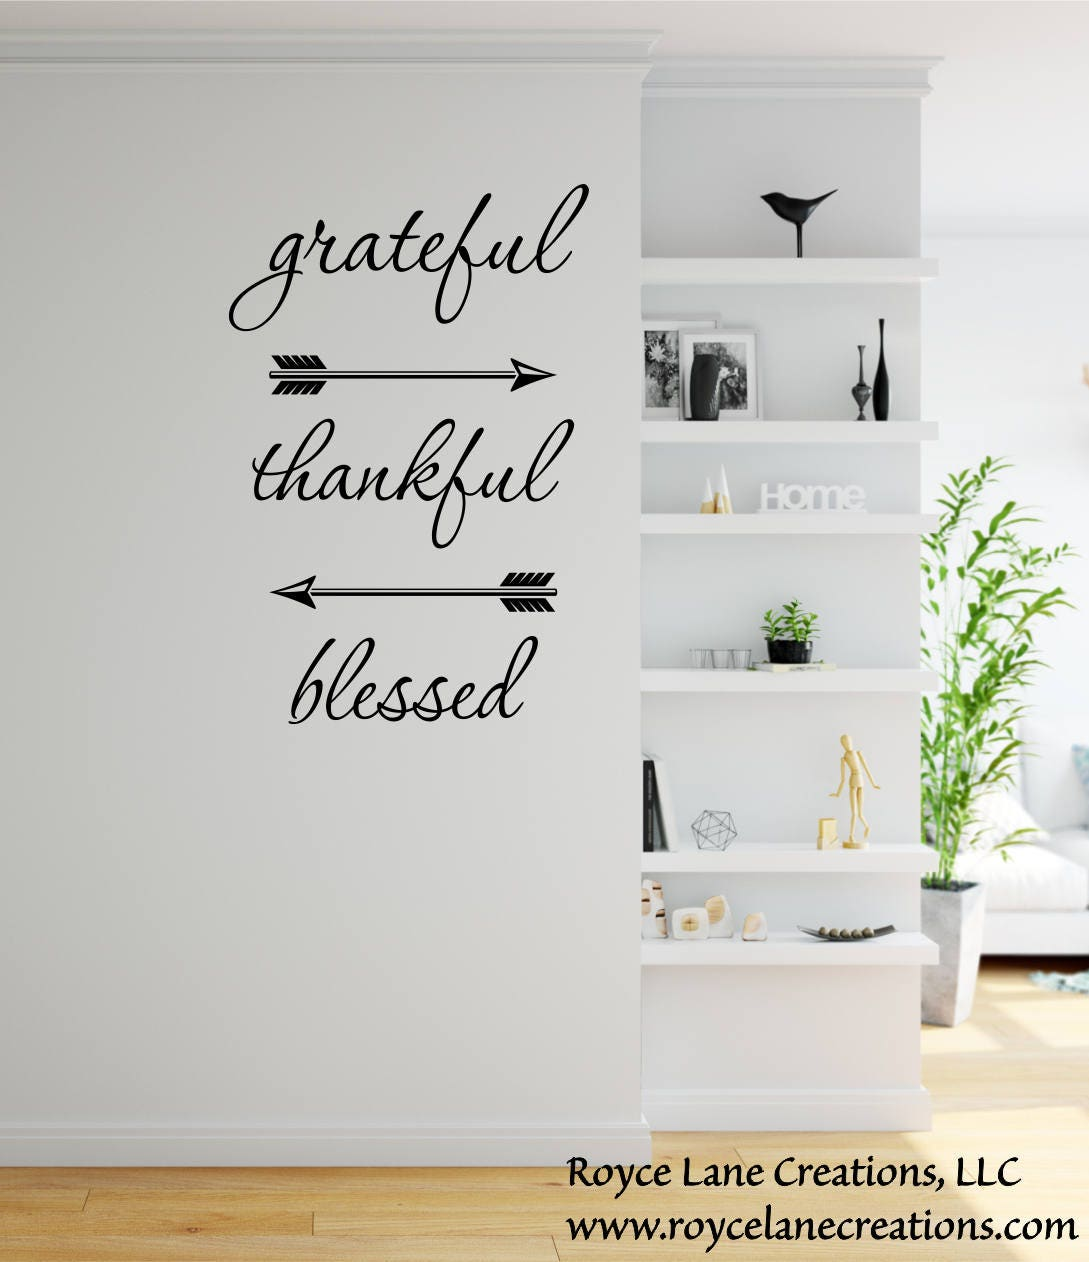 Grateful Thankful Blessed Wall Decal Dining Room Decor